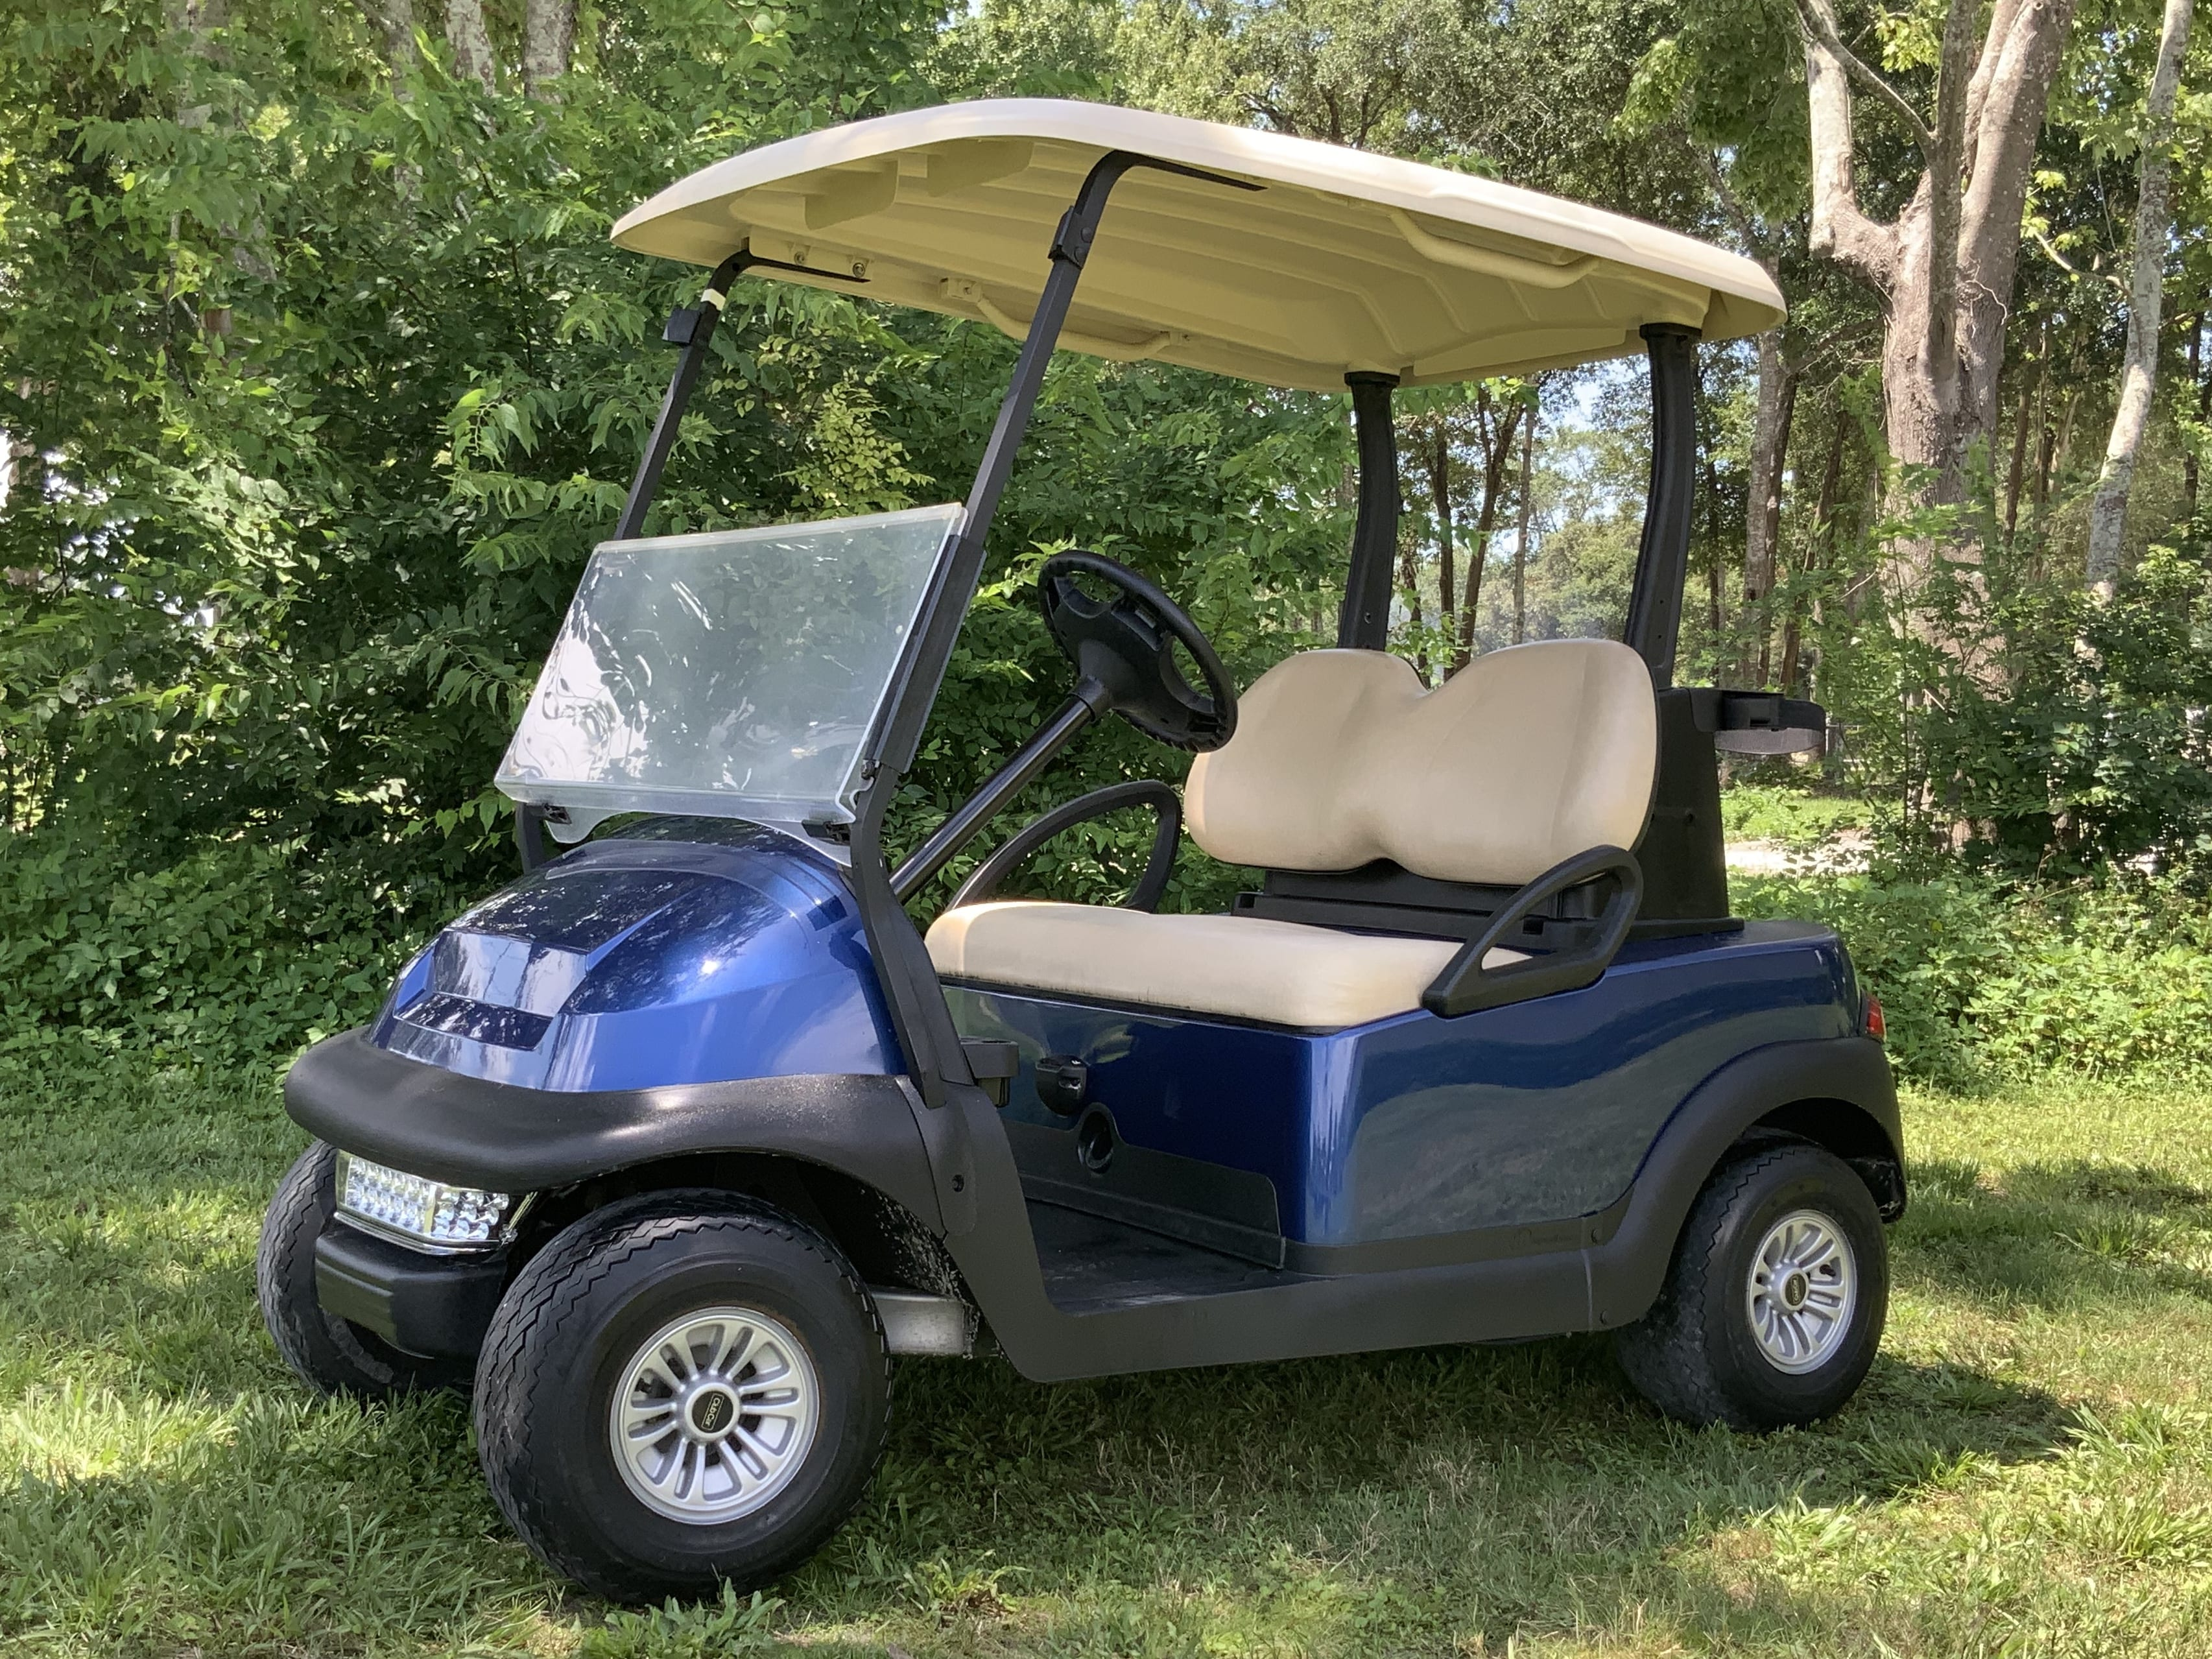 Club Car blue with standard beige seats and beige top 2 pass stock 1321